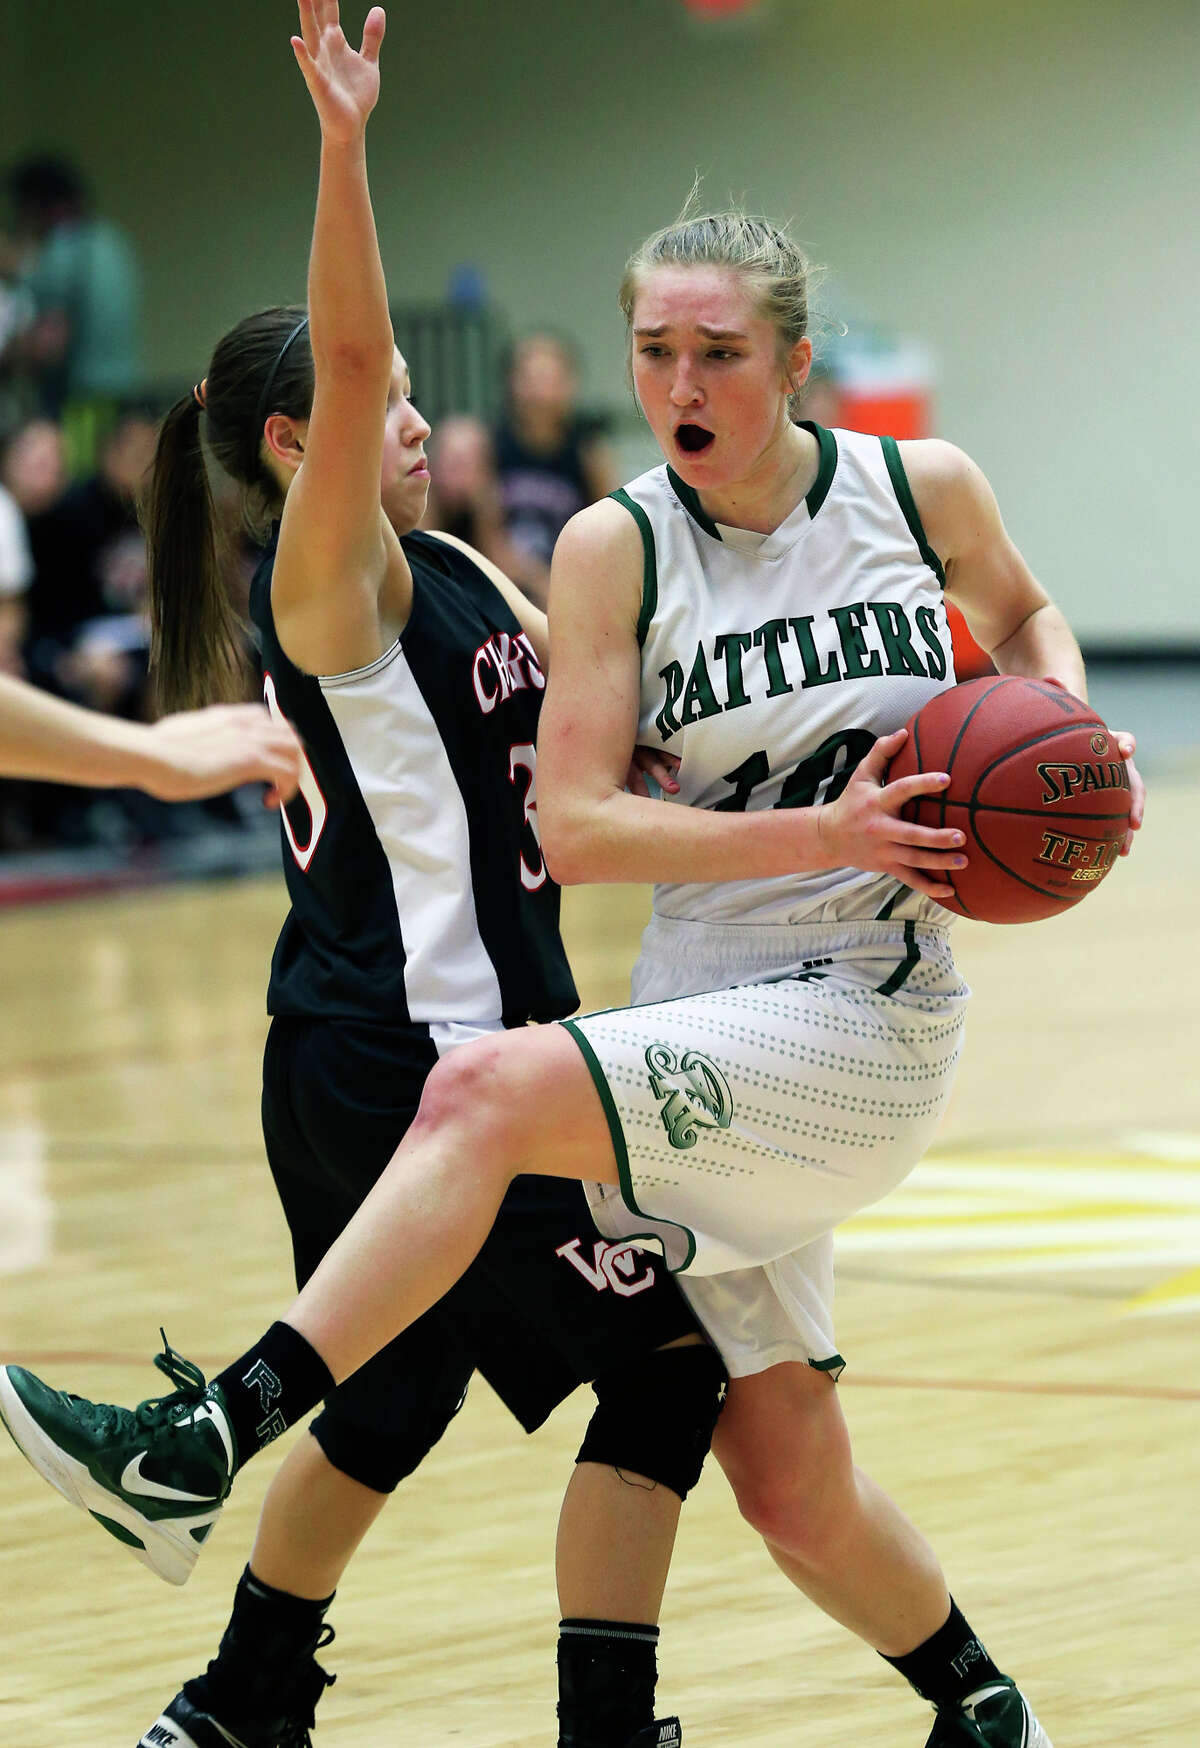 Wendy Knight tugs away a pass for the Rattlers as the Reagan girls play Churchill at Littleton Gym on January 15, 2013.